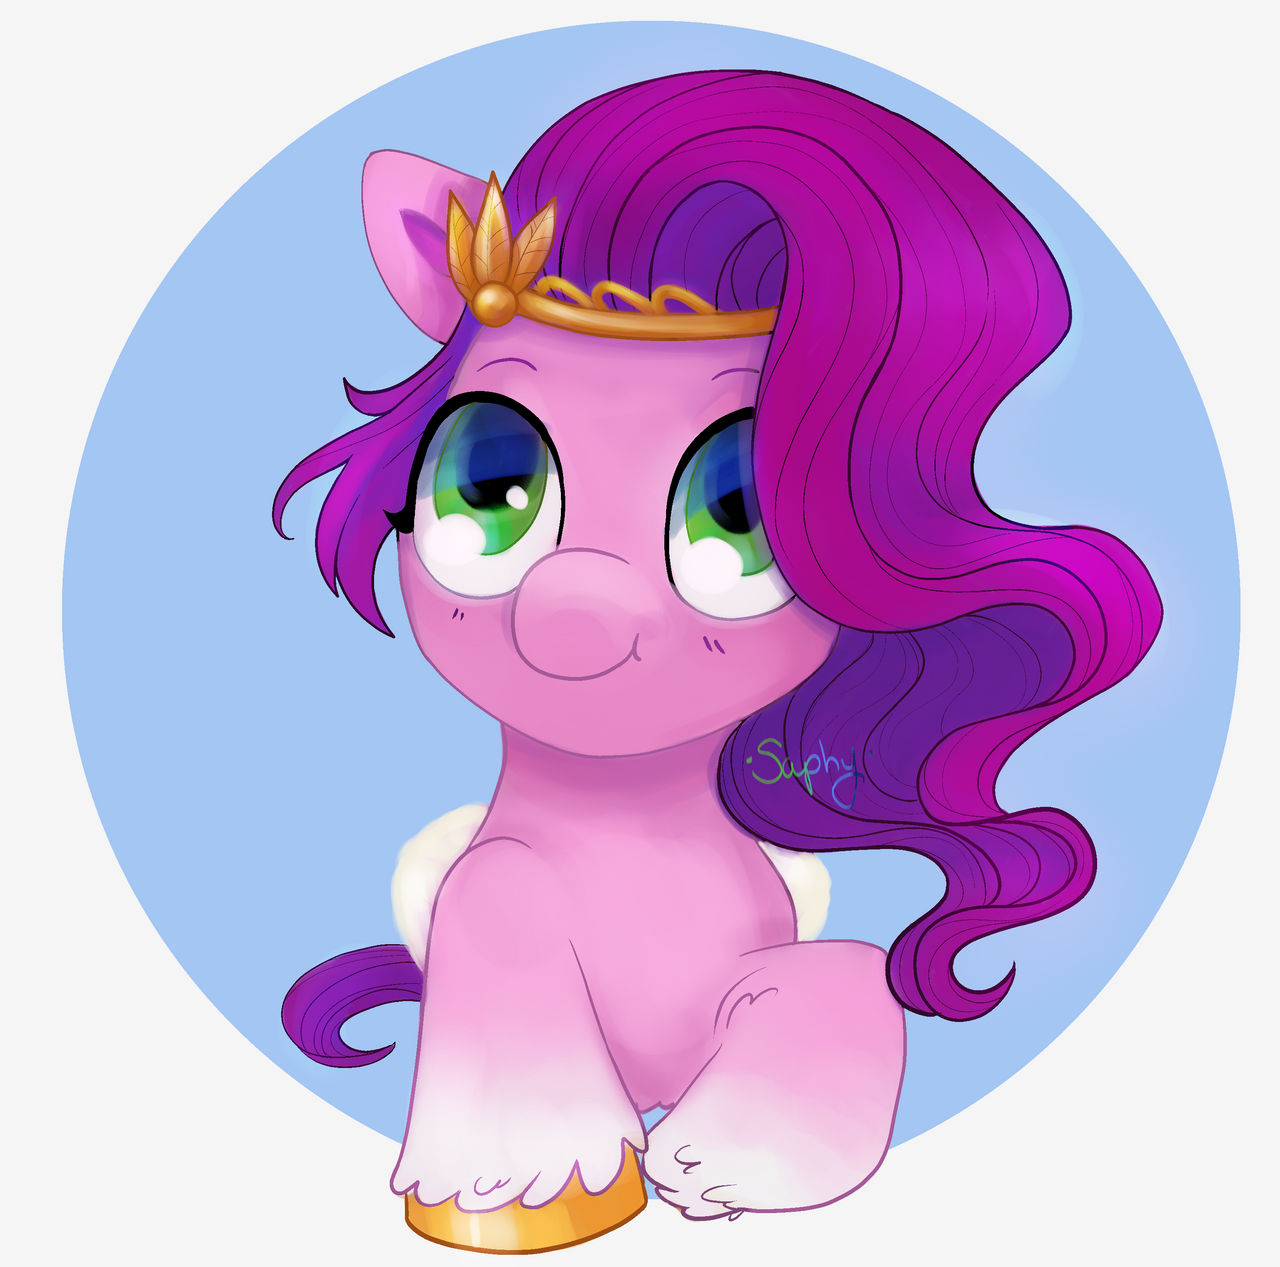 princess_pipp_by_saphypone_deo3is2-fullview.jpg